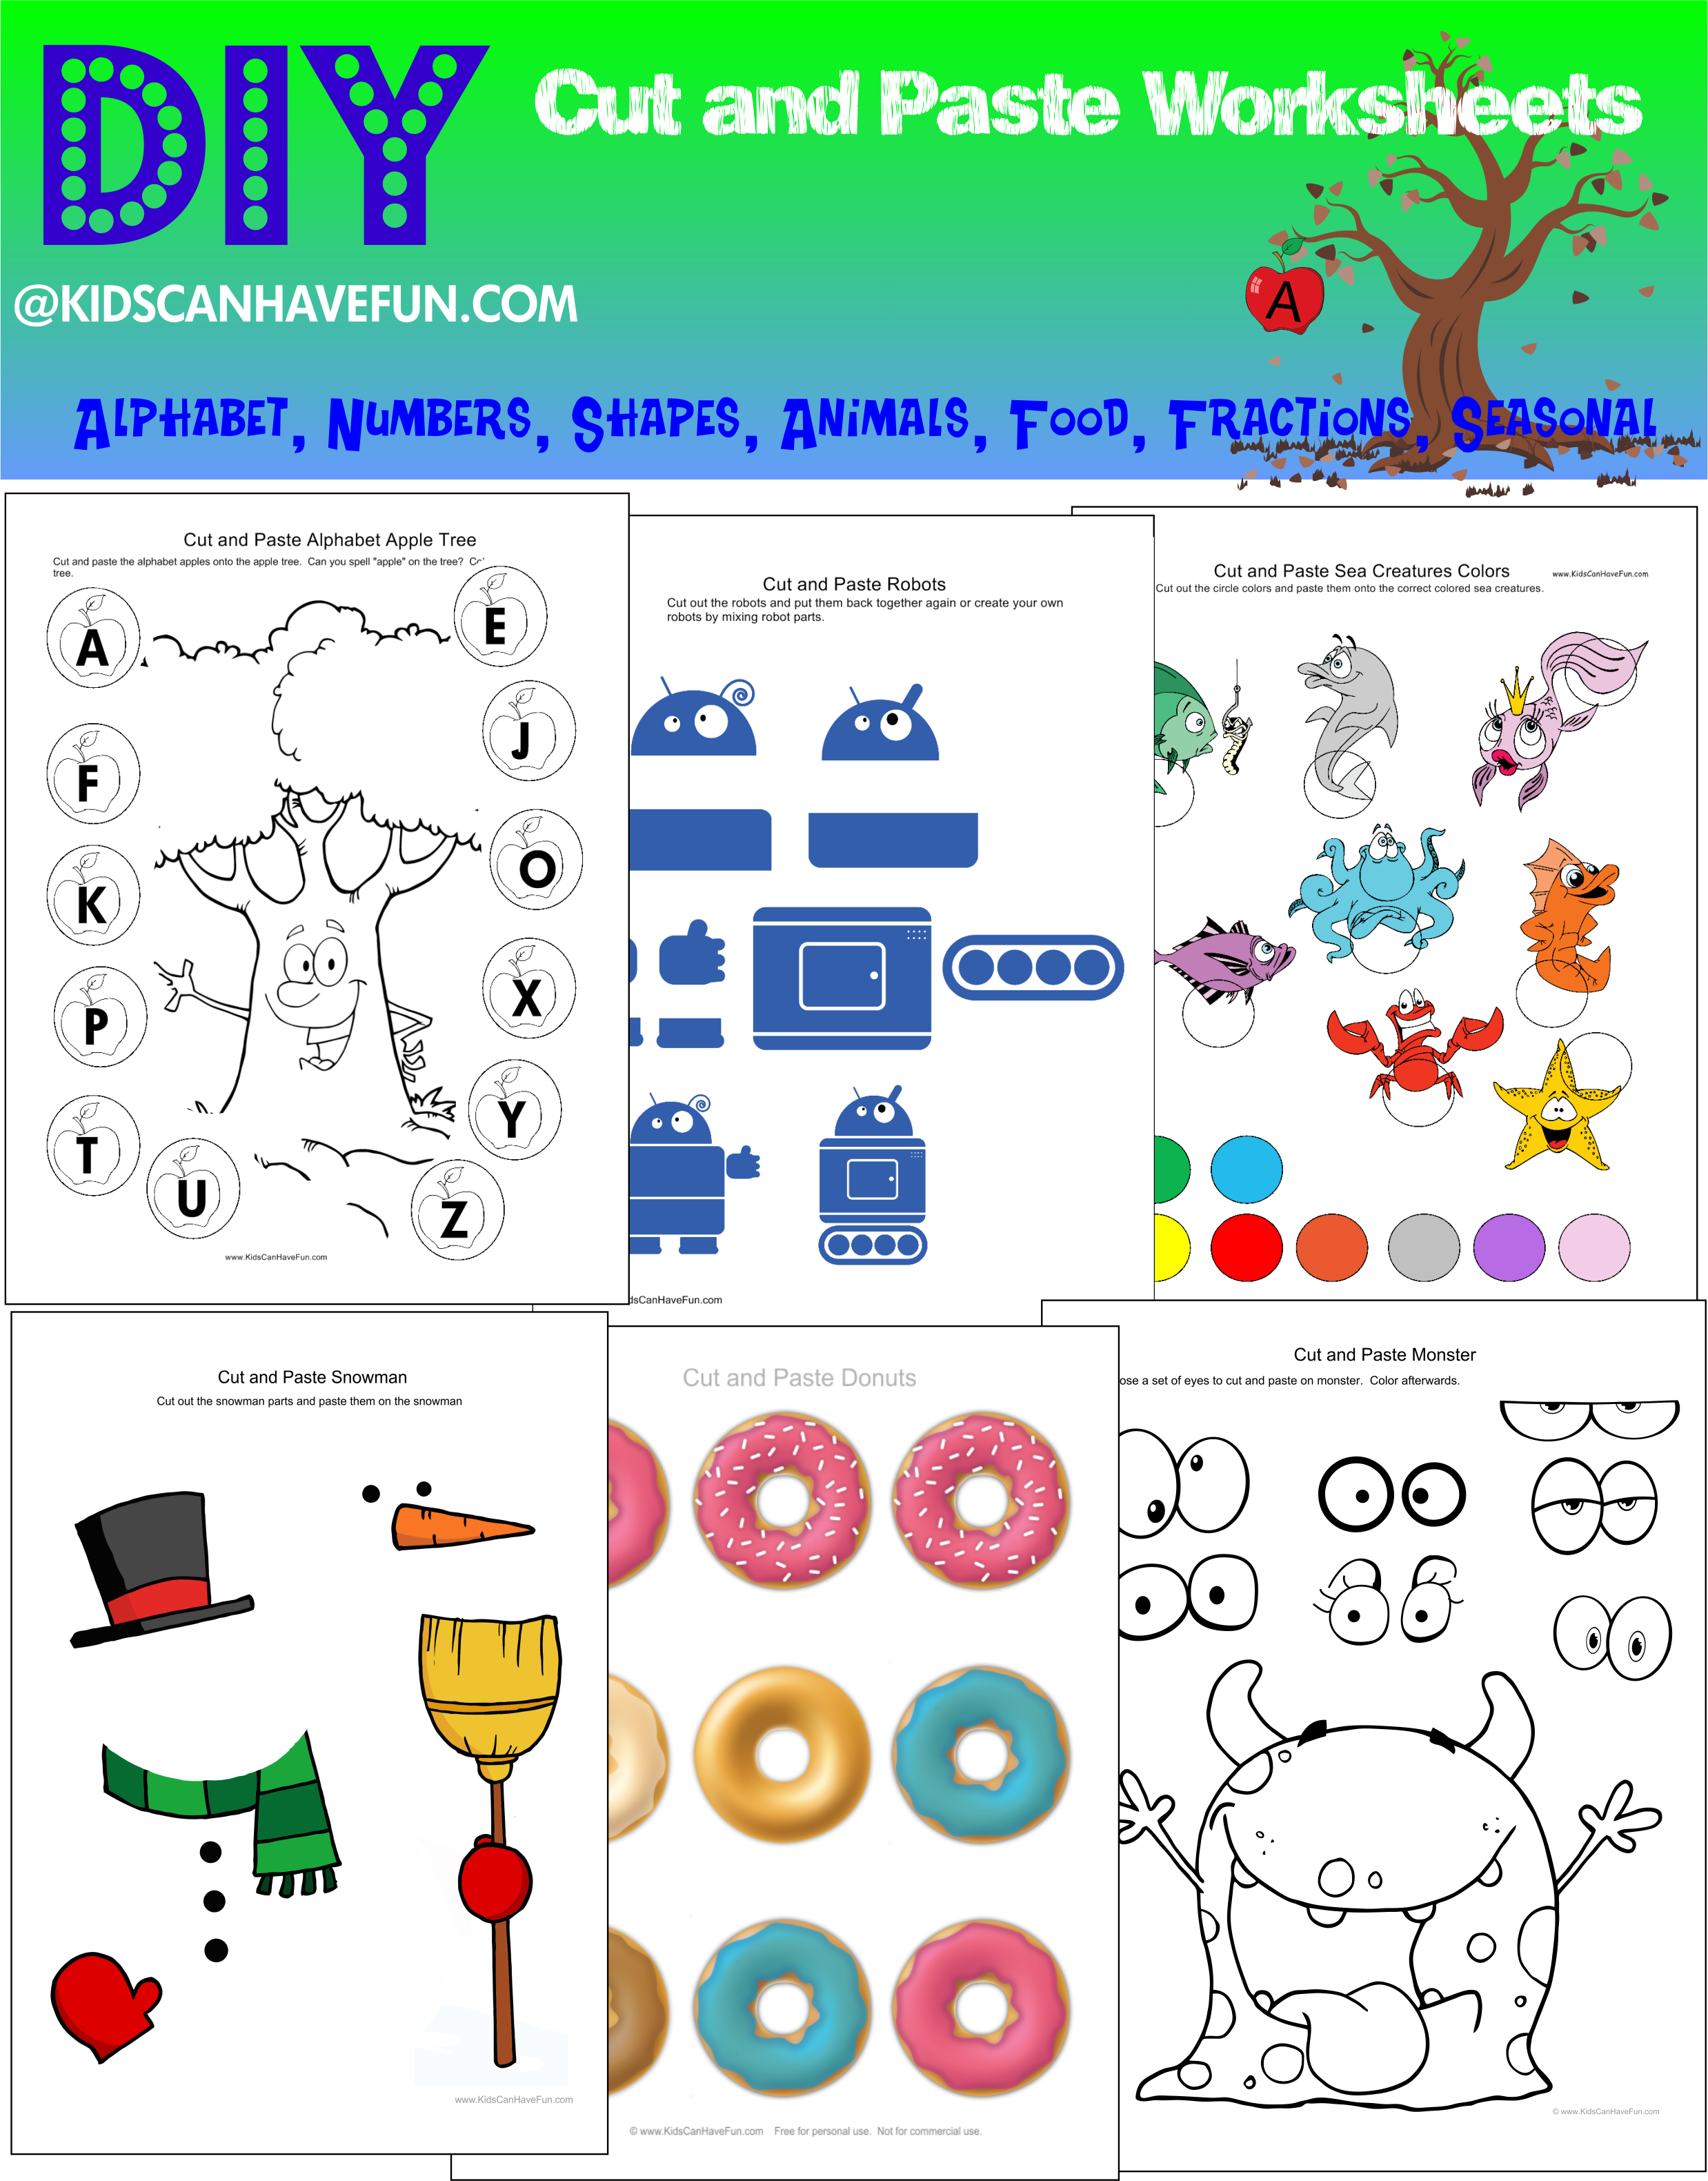 Kidscanhavefun Adl Kullan C N N Cut And Paste Worksheets Activities For Preschool